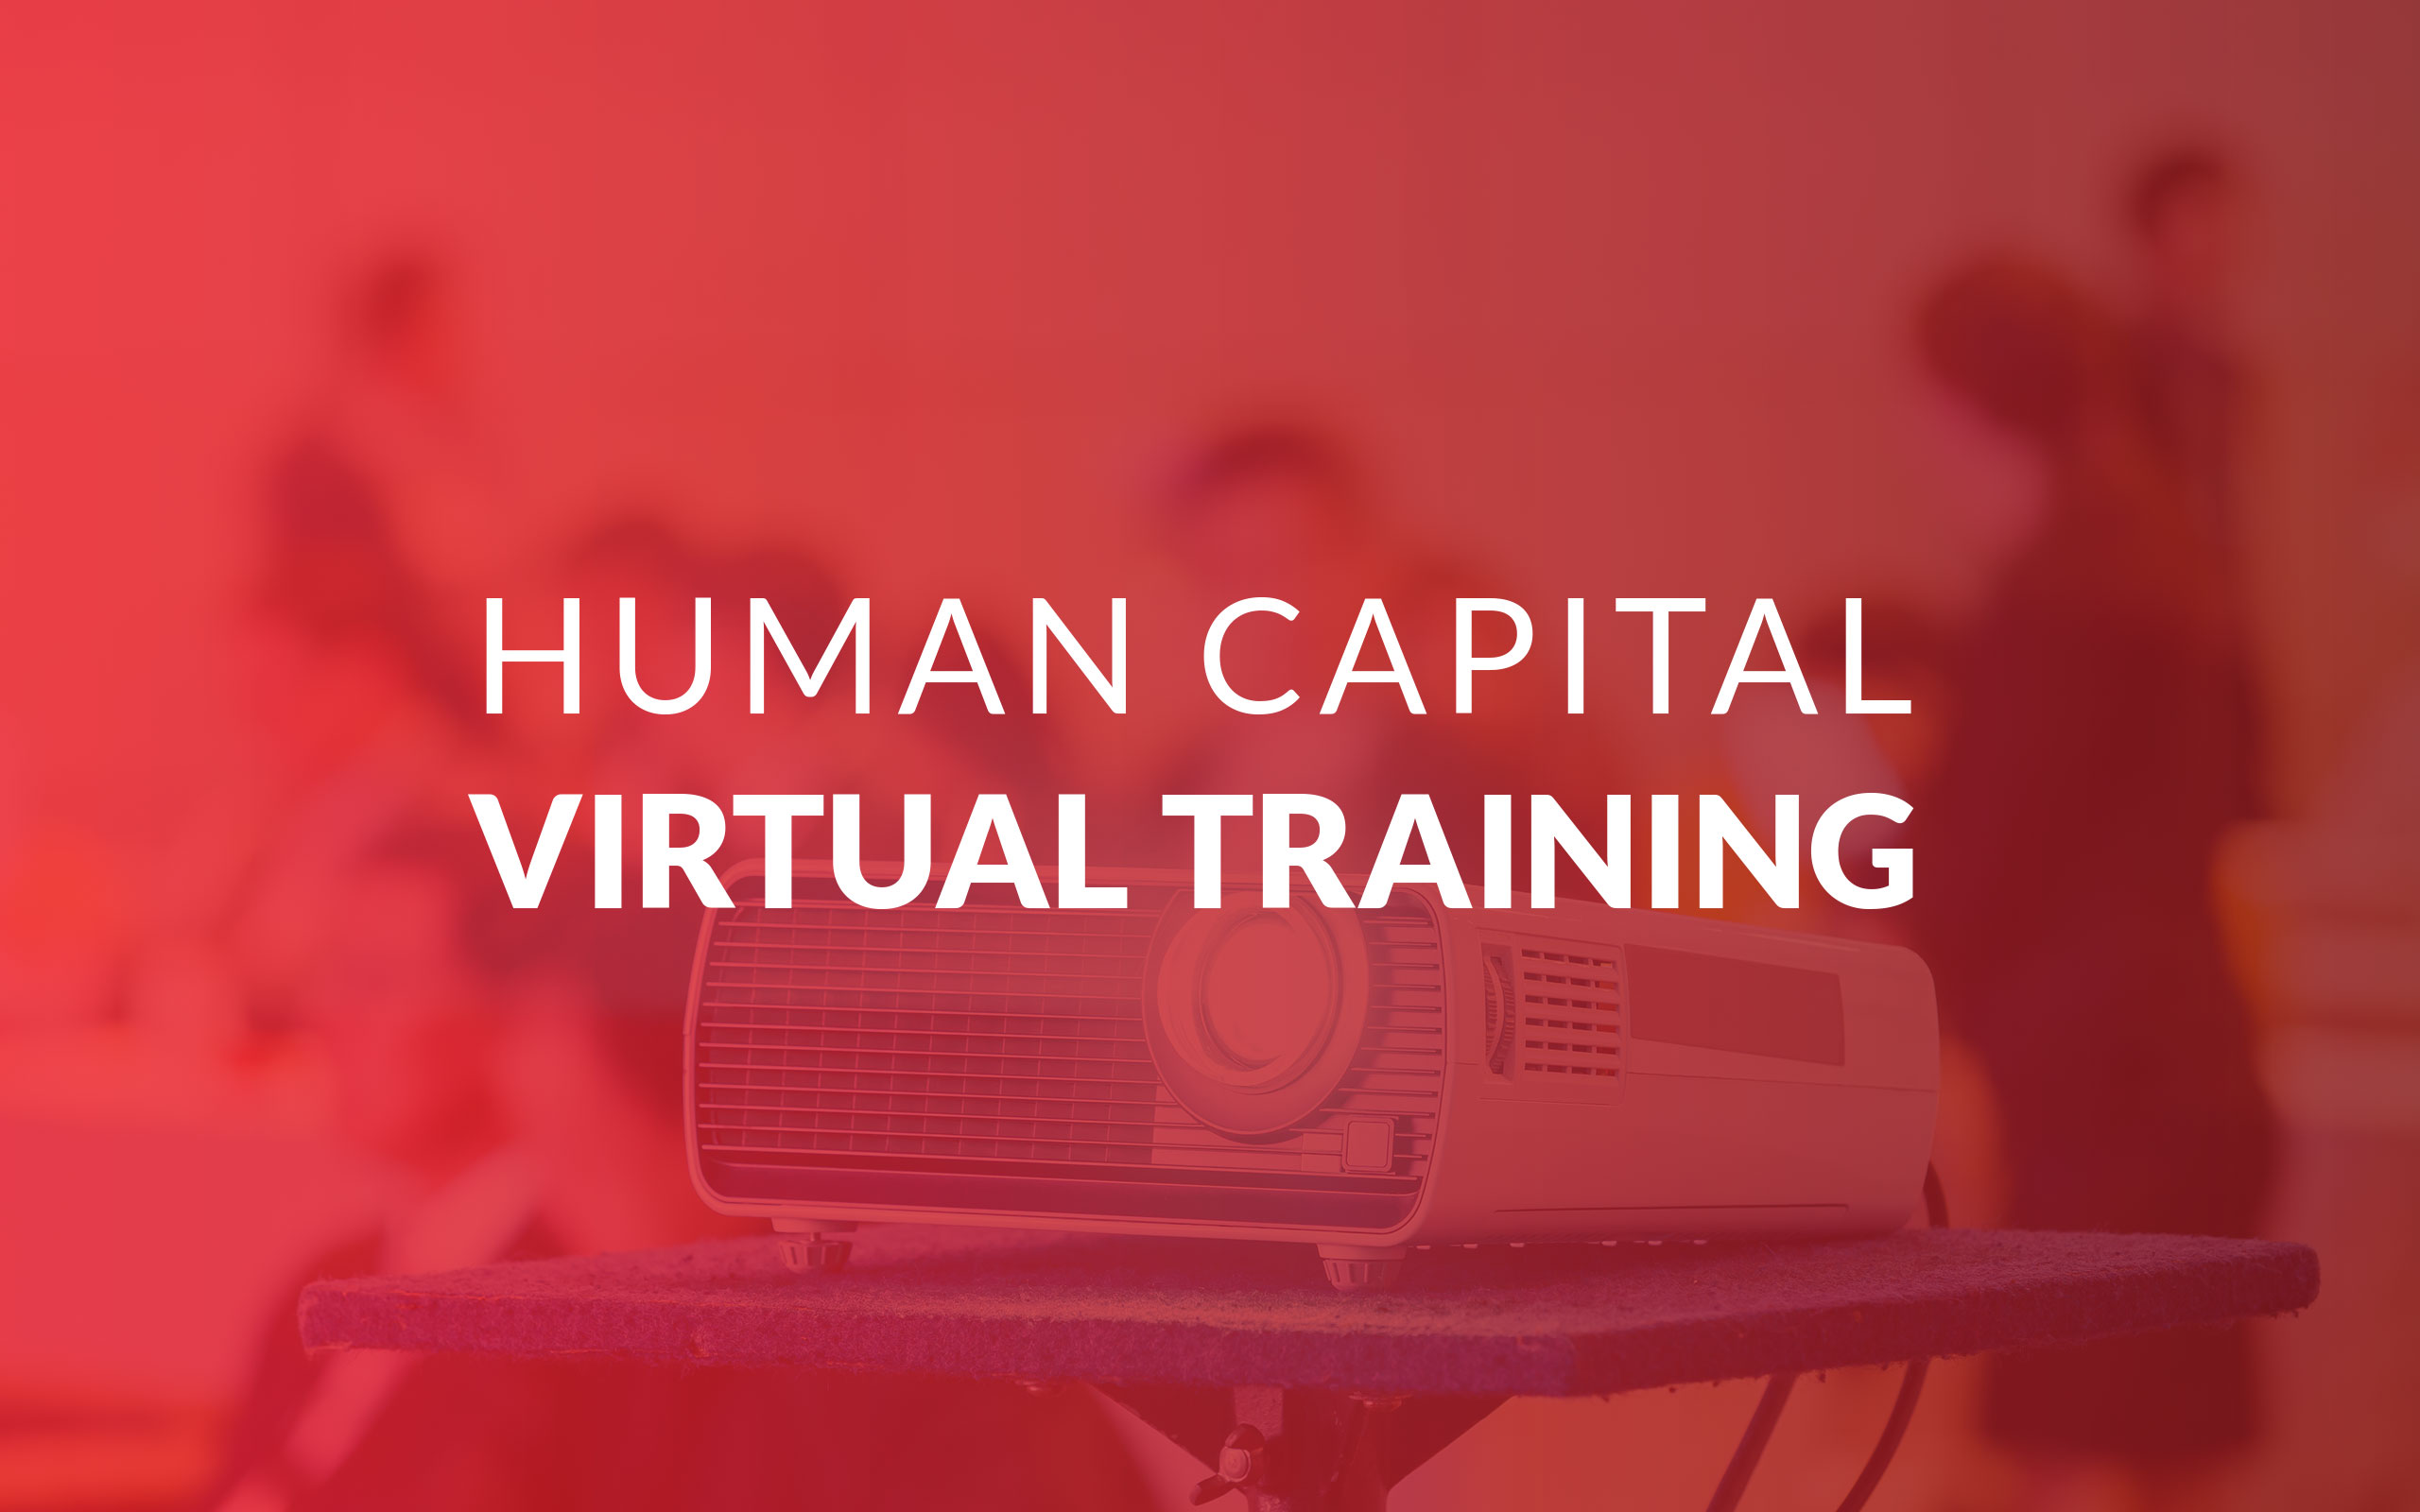 Human Capital Virtual Training